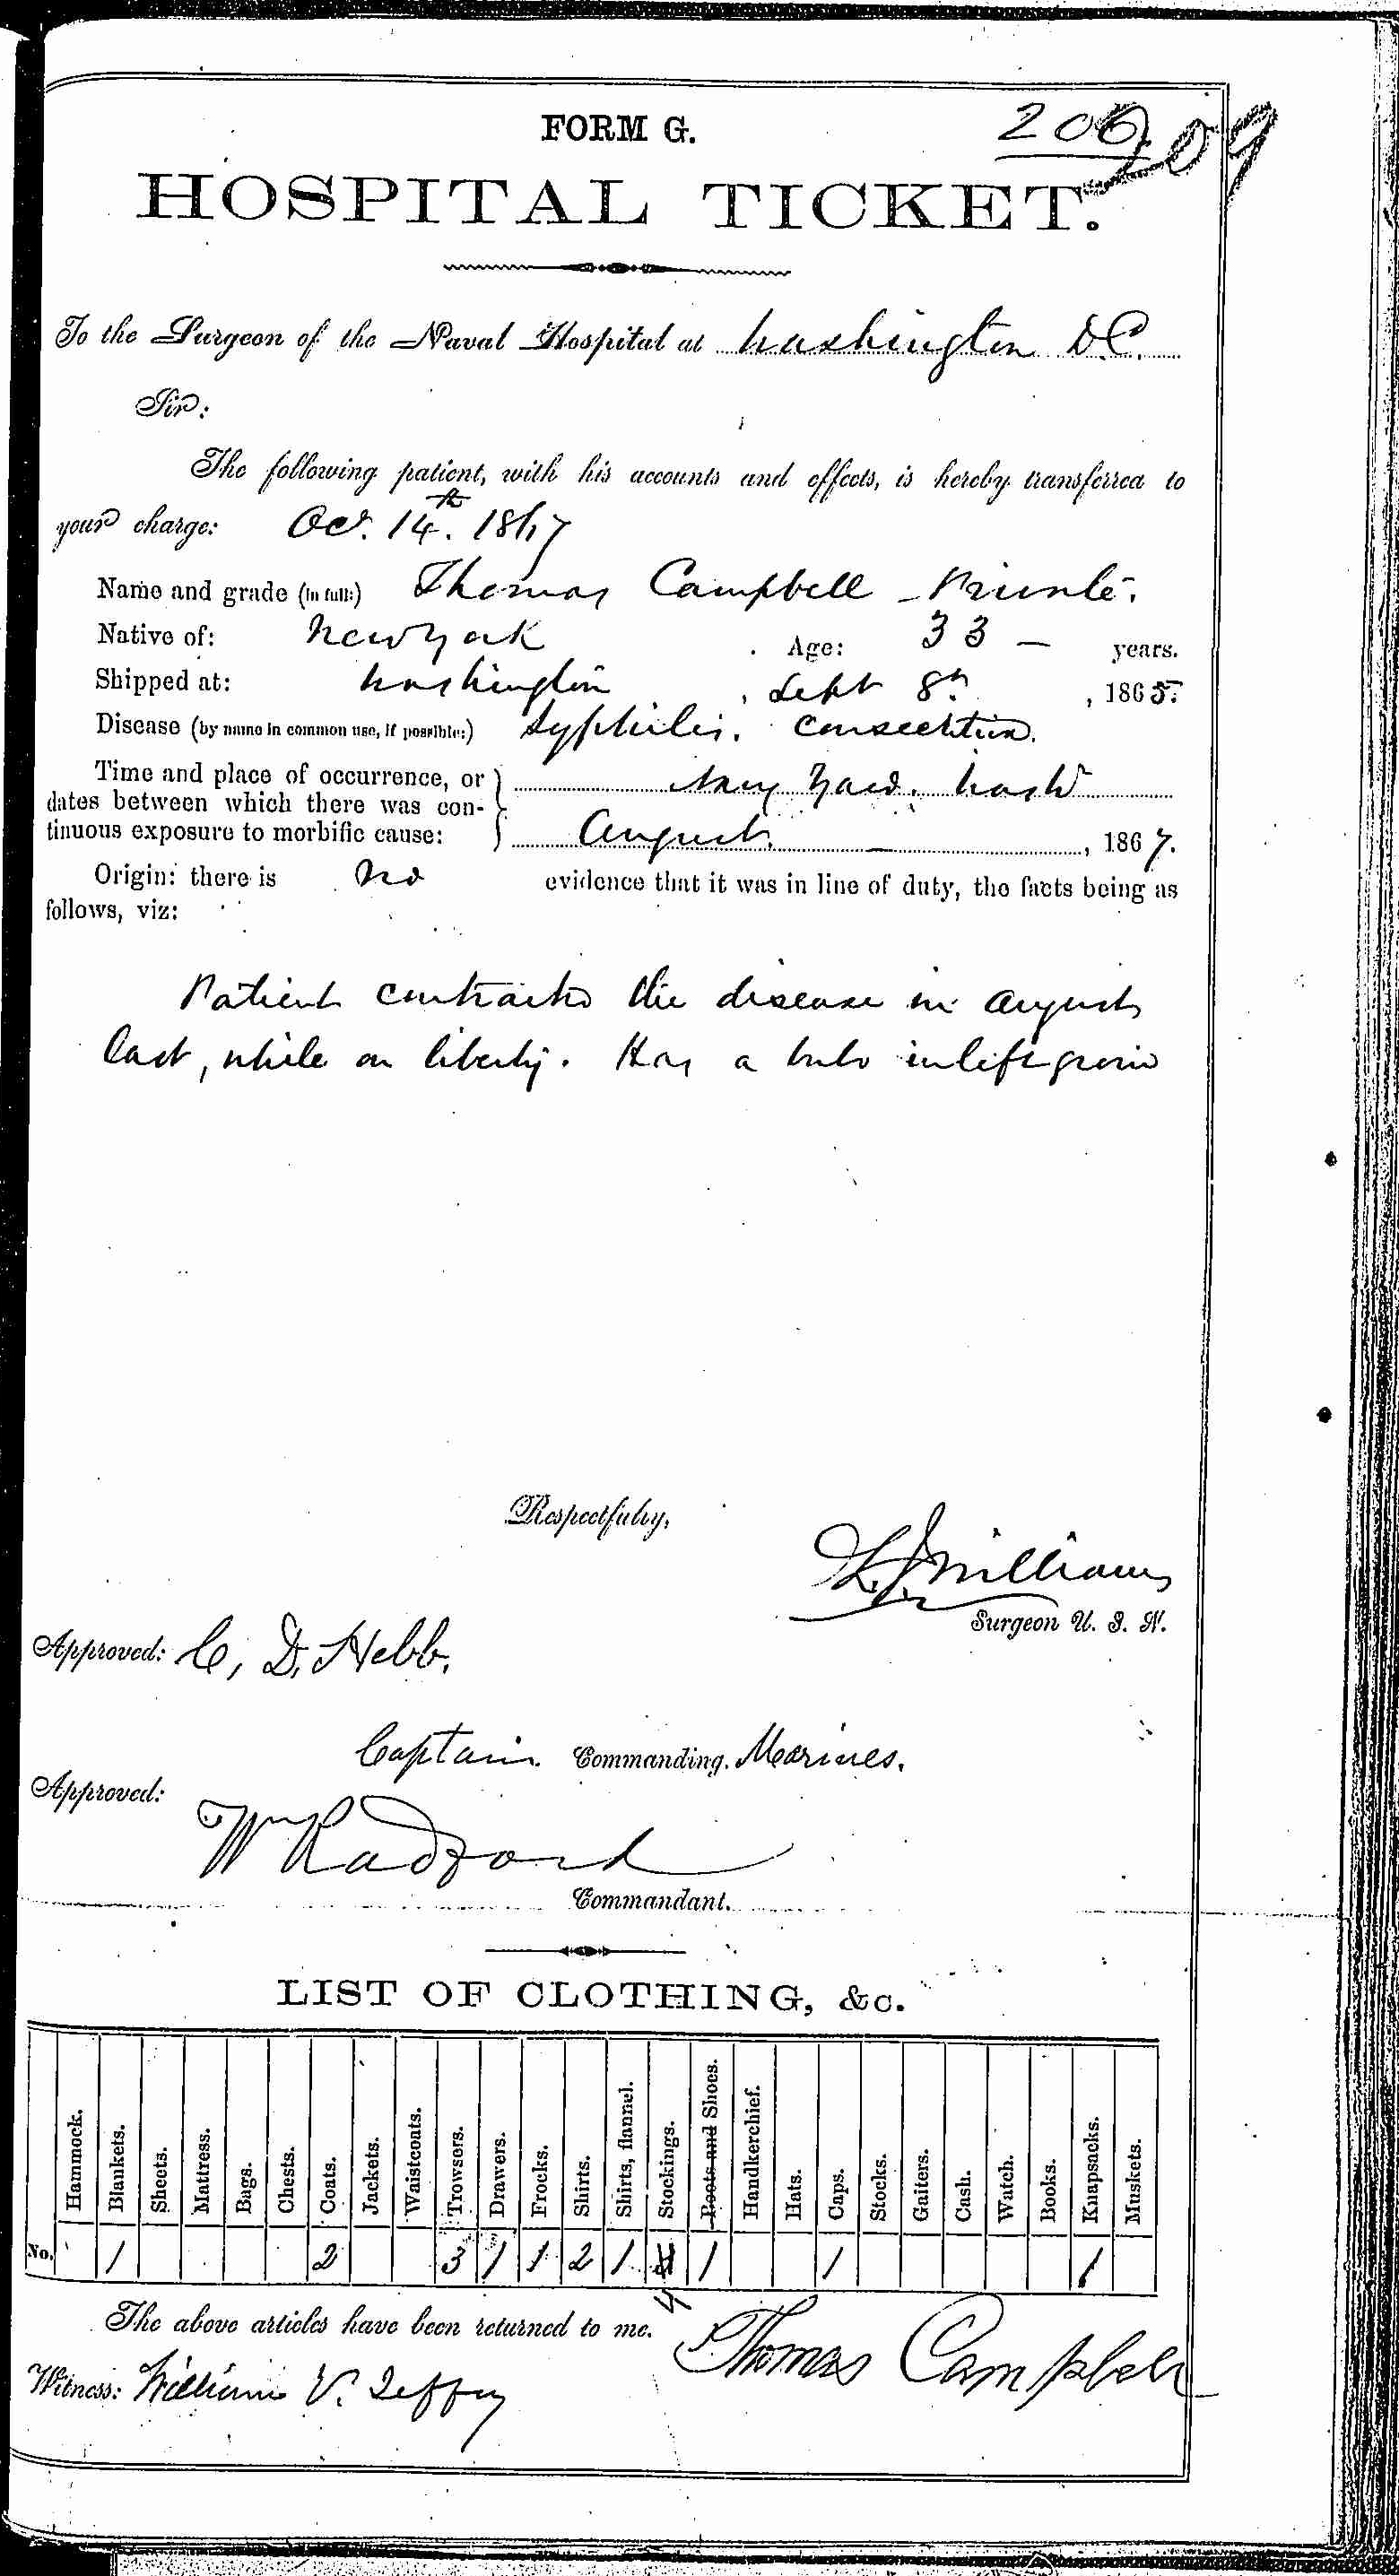 Entry for Thomas Campbell (third admission page 1 of 2) in the log Hospital Tickets and Case Papers - Naval Hospital - Washington, D.C. - 1866-68